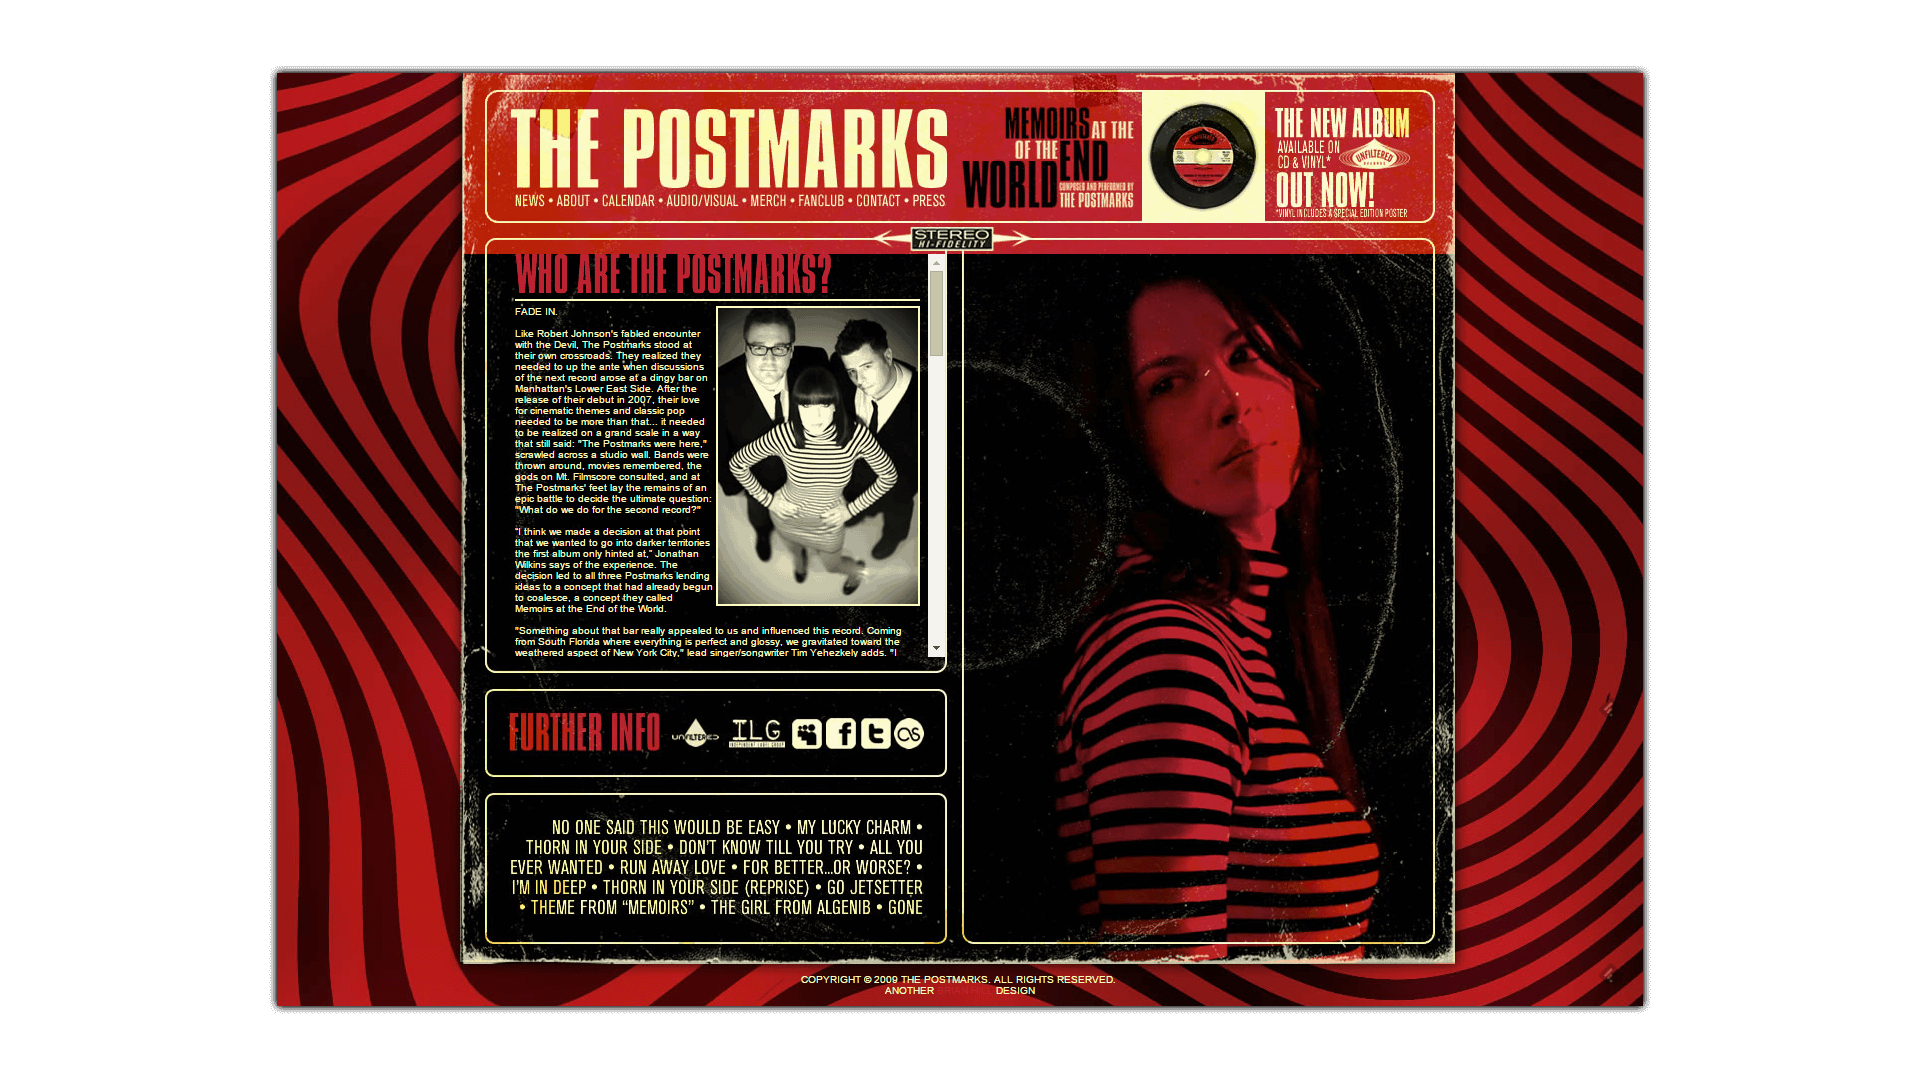 BRIAN HILL DESIGN: The Postmarks